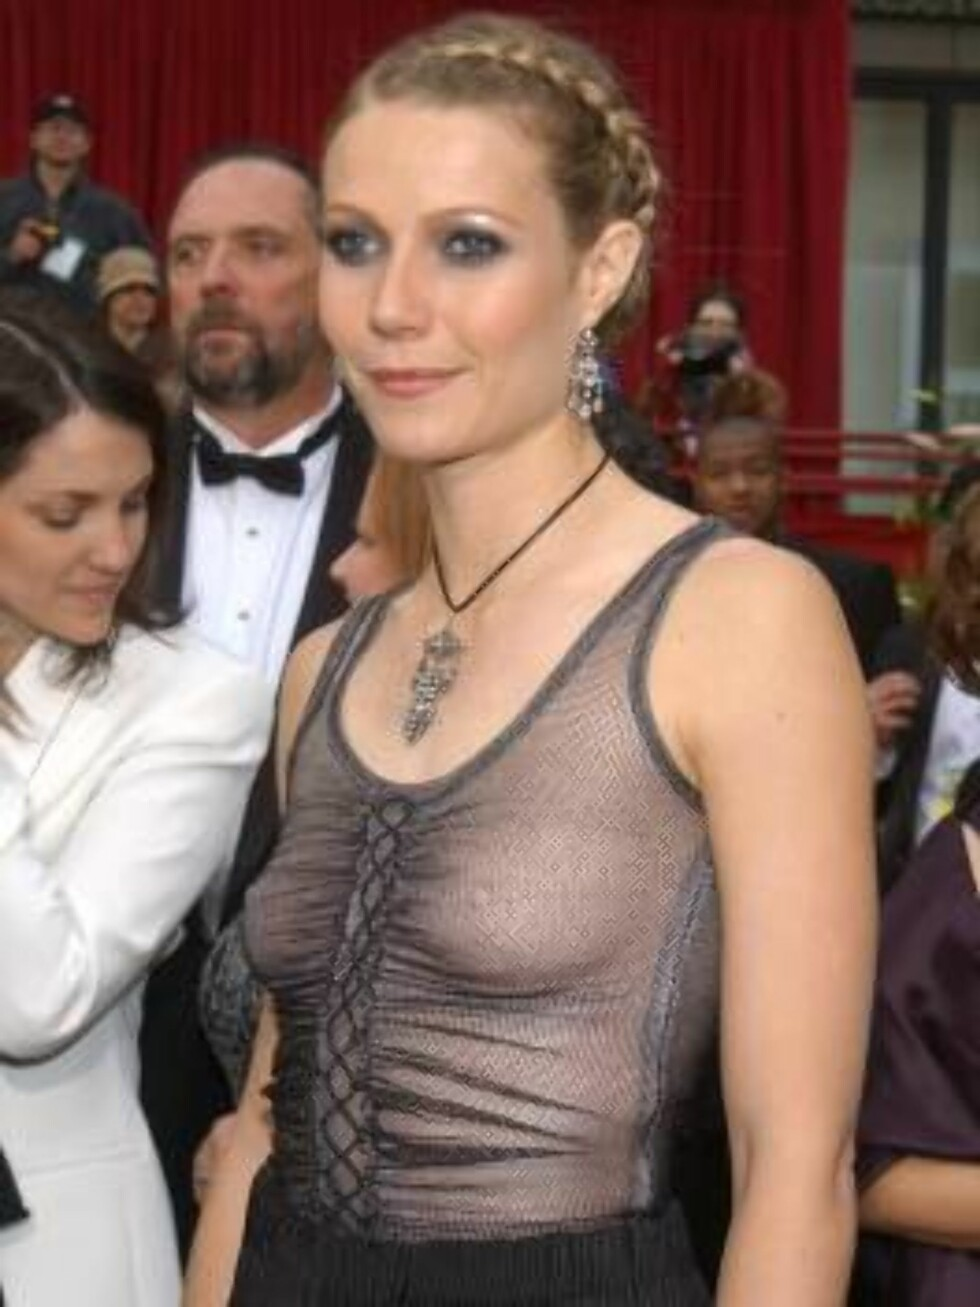 402719 224:  Actress Gwyneth Paltrow arrives at the 74th Annual Academy Awards March 24, 2002 at The Kodak Theater in Hollywood, CA.  (Photo by Vince Bucci/Getty Images) ALL OVER PRESS Foto: Getty Images